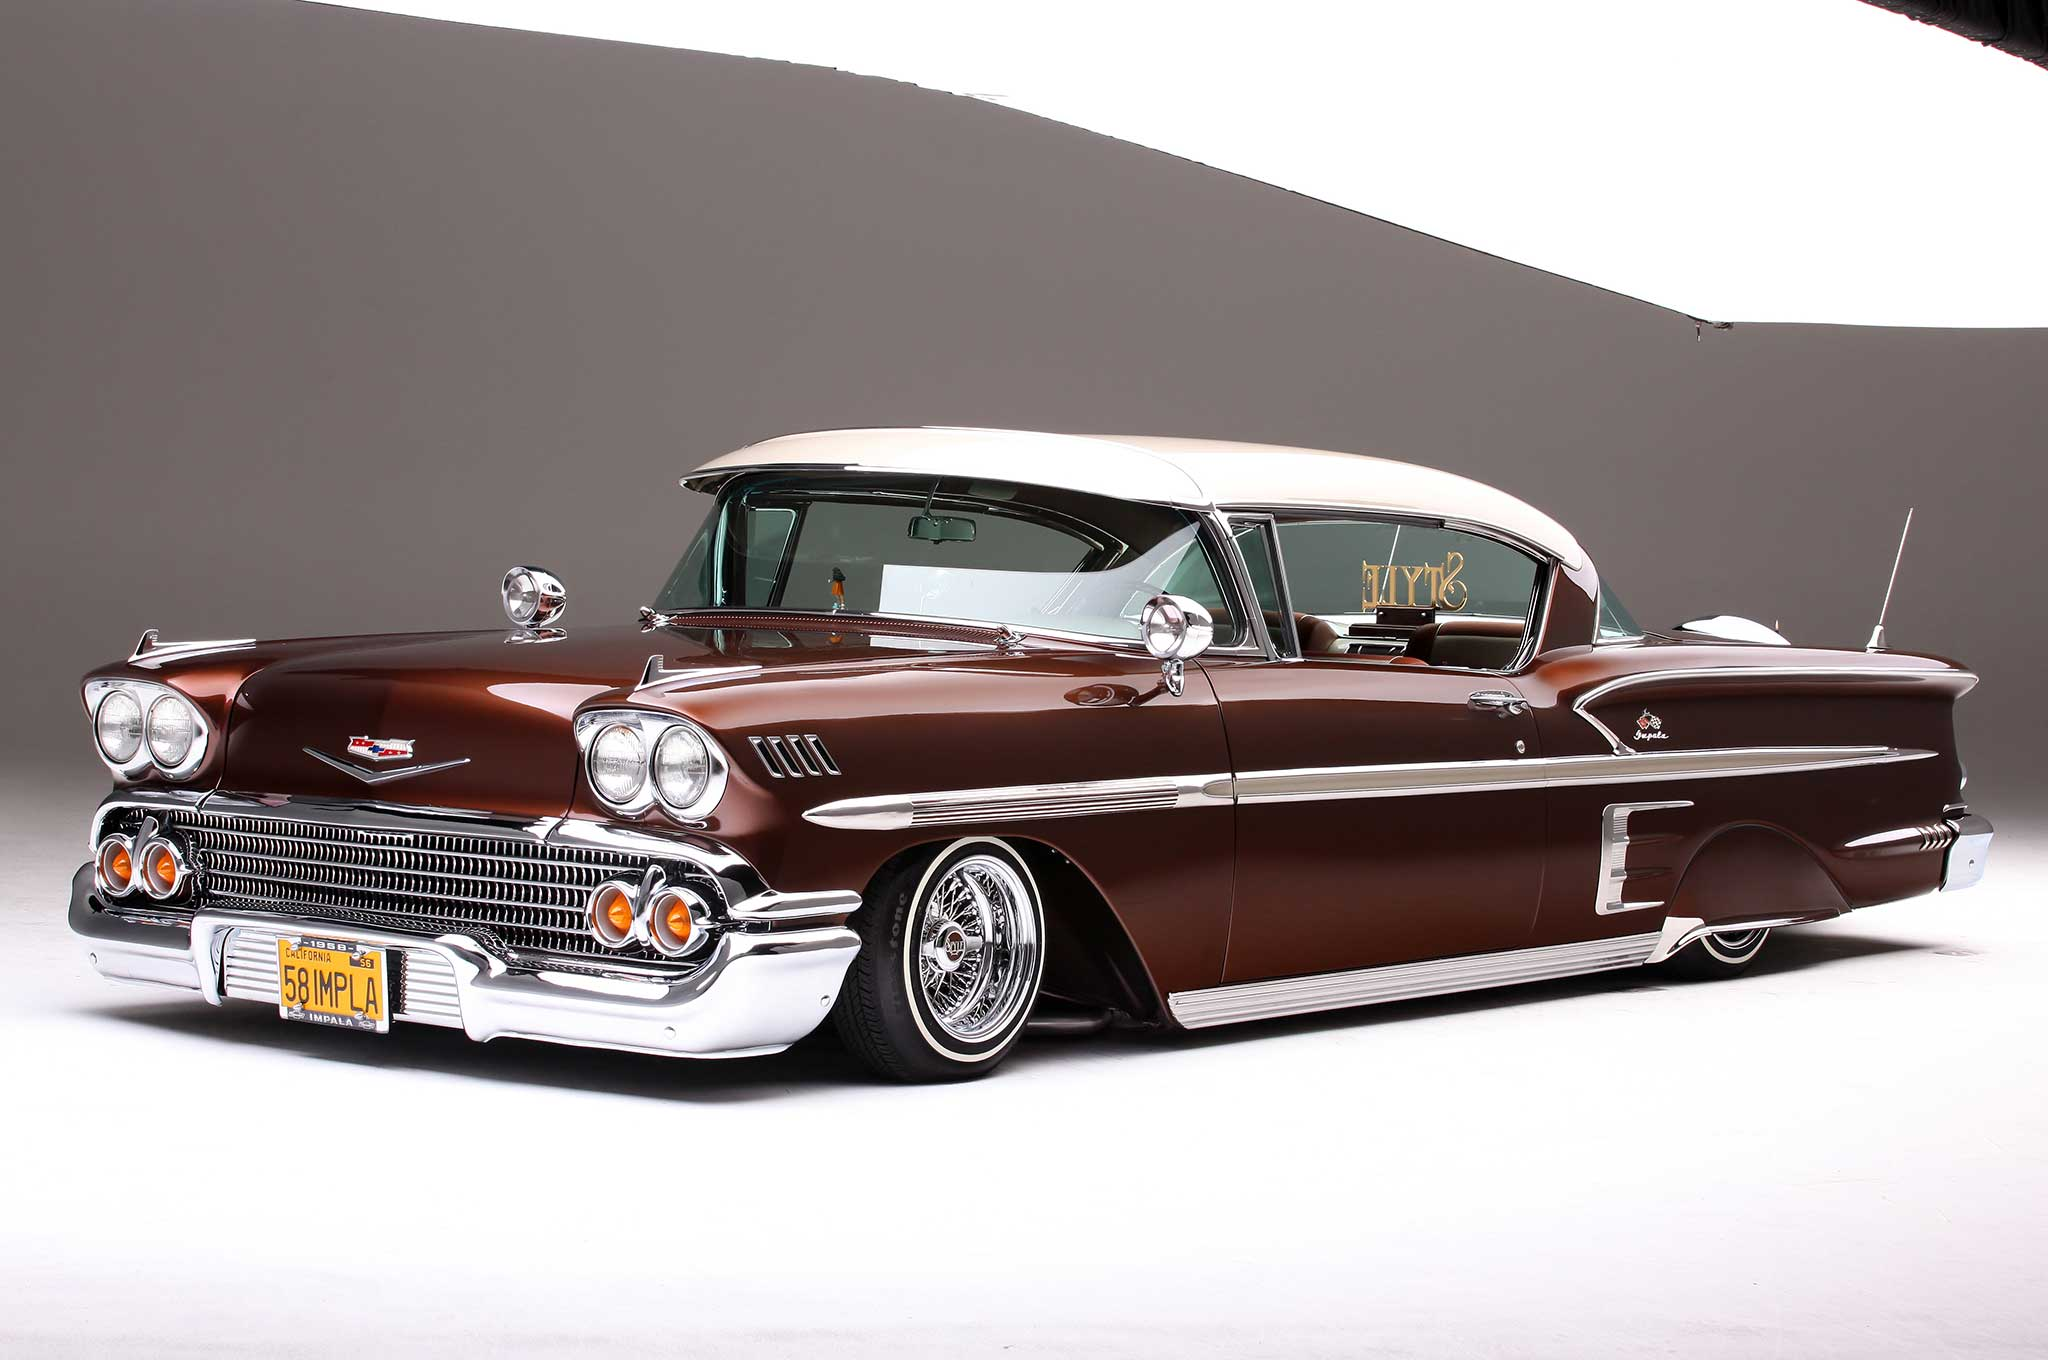 Lowrider Miami >> 1958 Chevrolet Impala - Gentleman's Style of a '58 - Lowrider